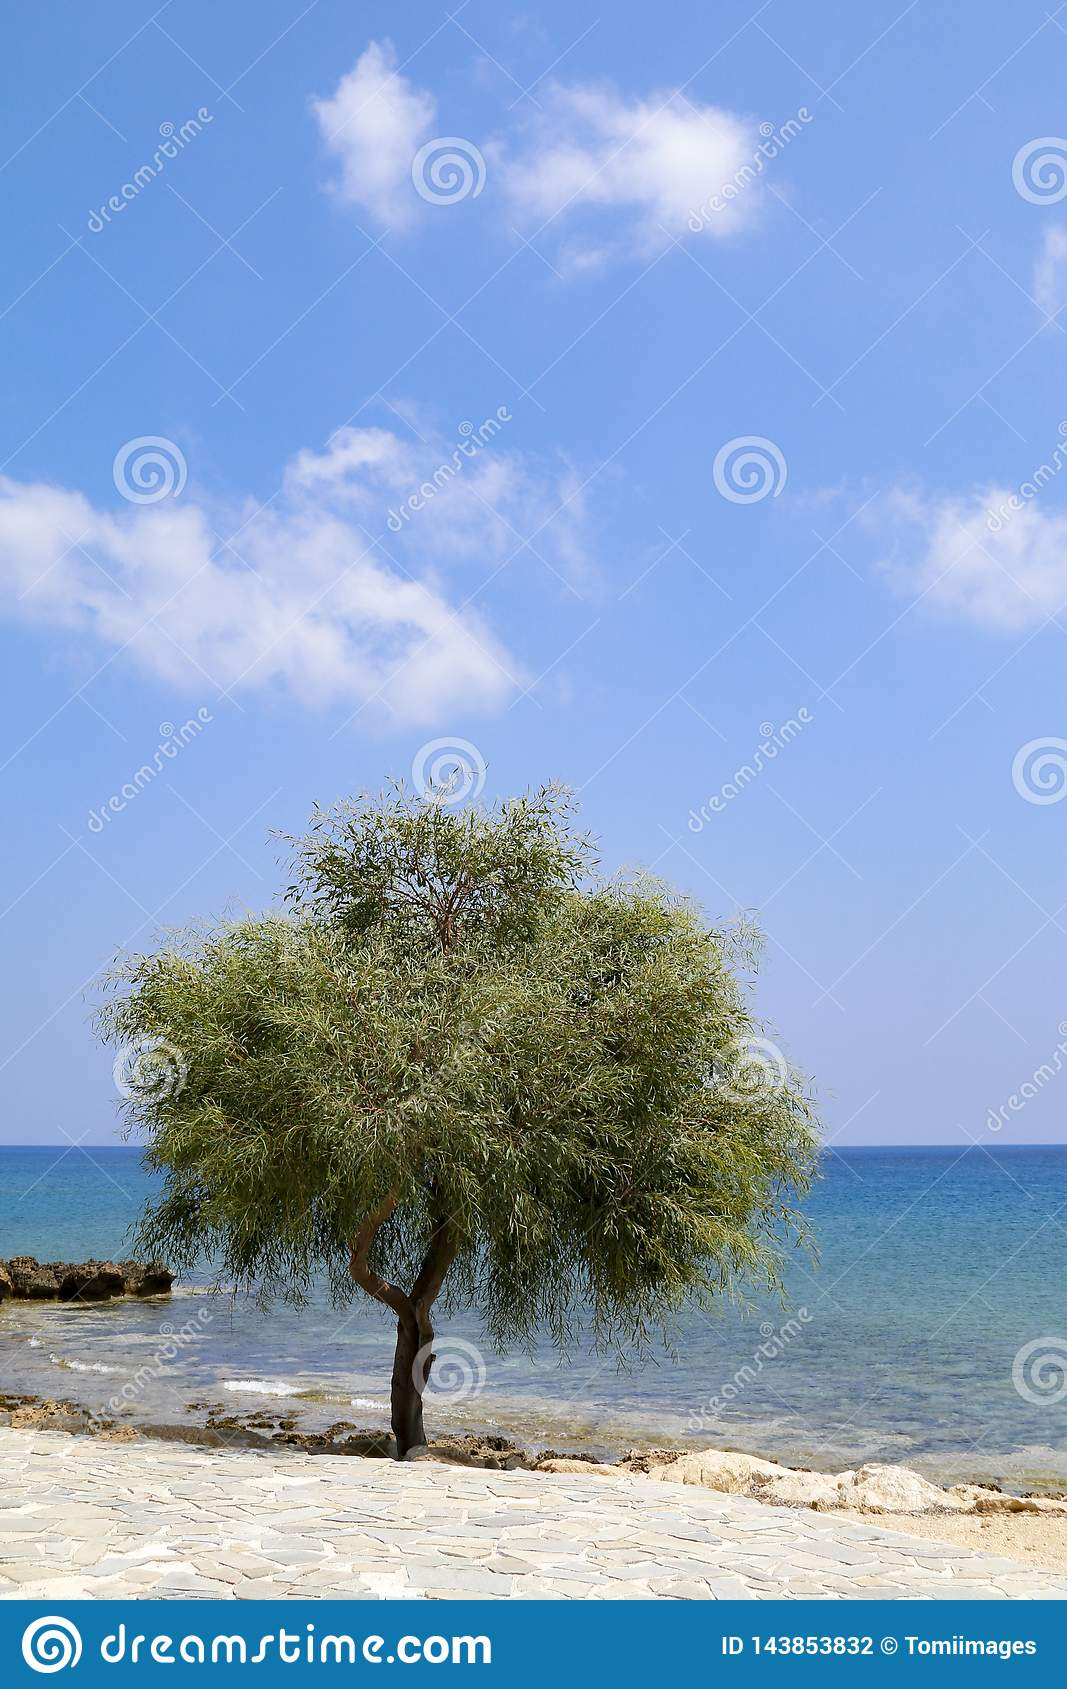 Lone tree beside sea on sunny day with blue sky